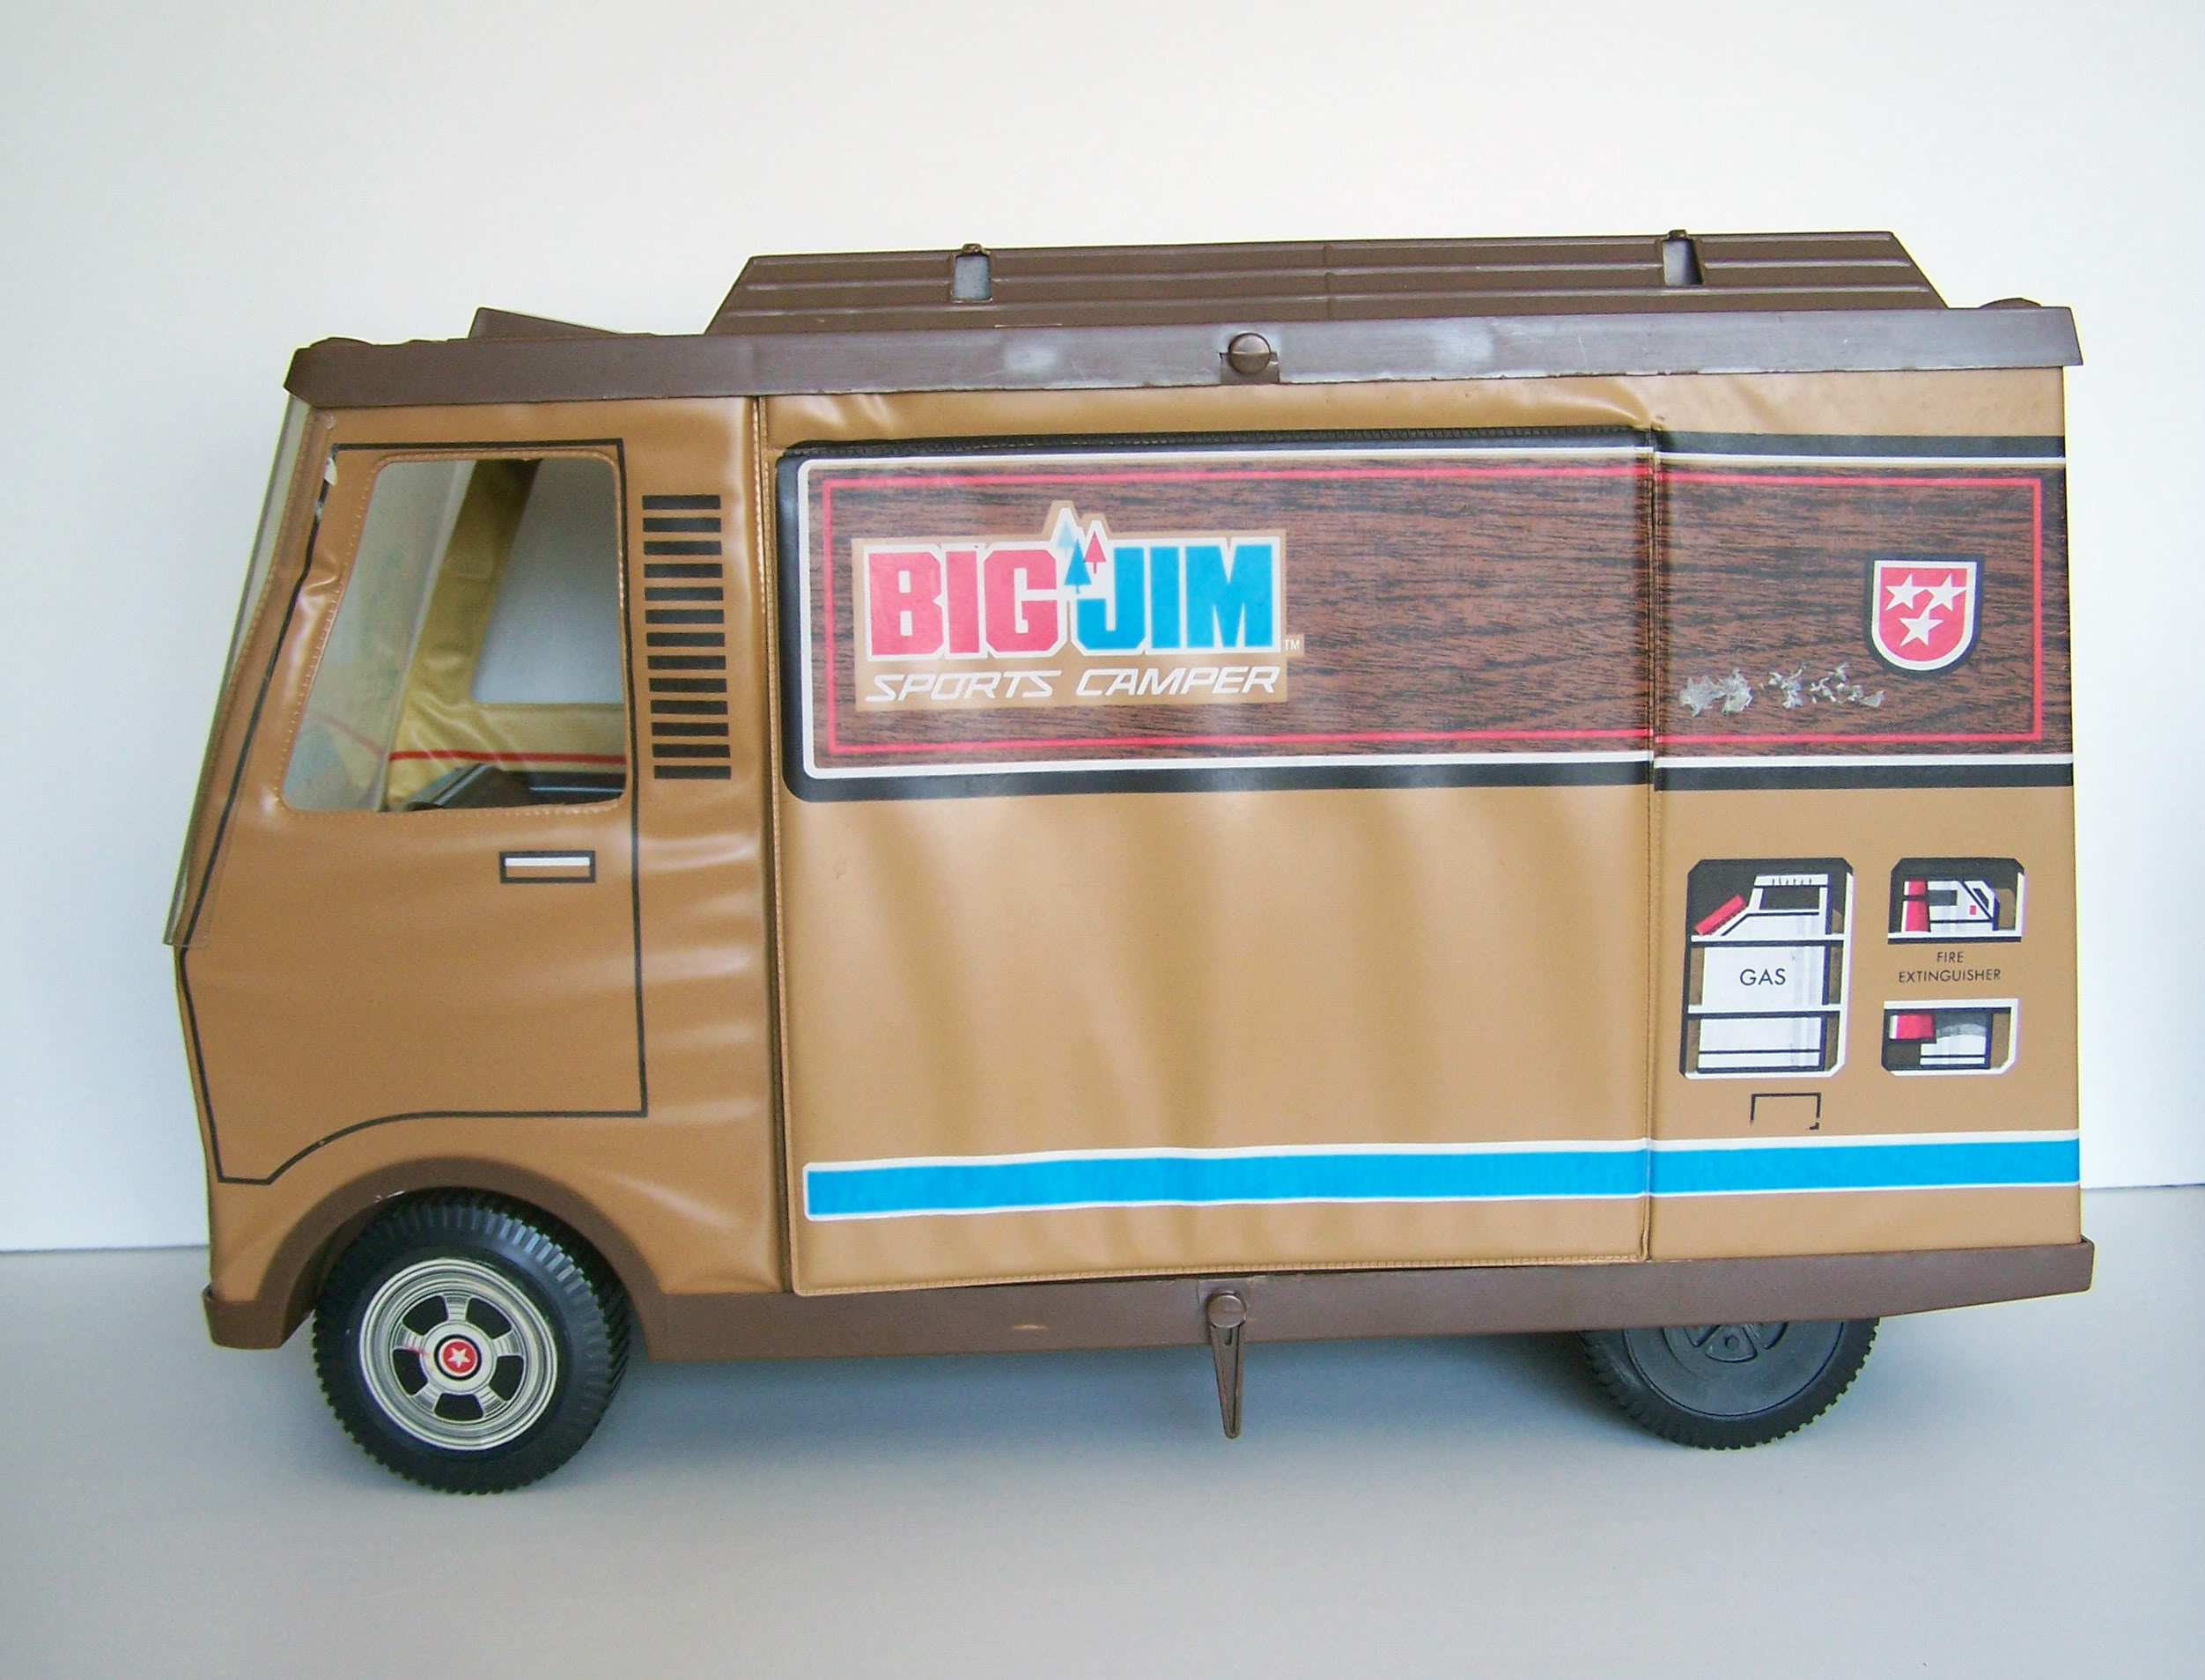 FS: Big Jim Sports Camper vehicle 101_9455